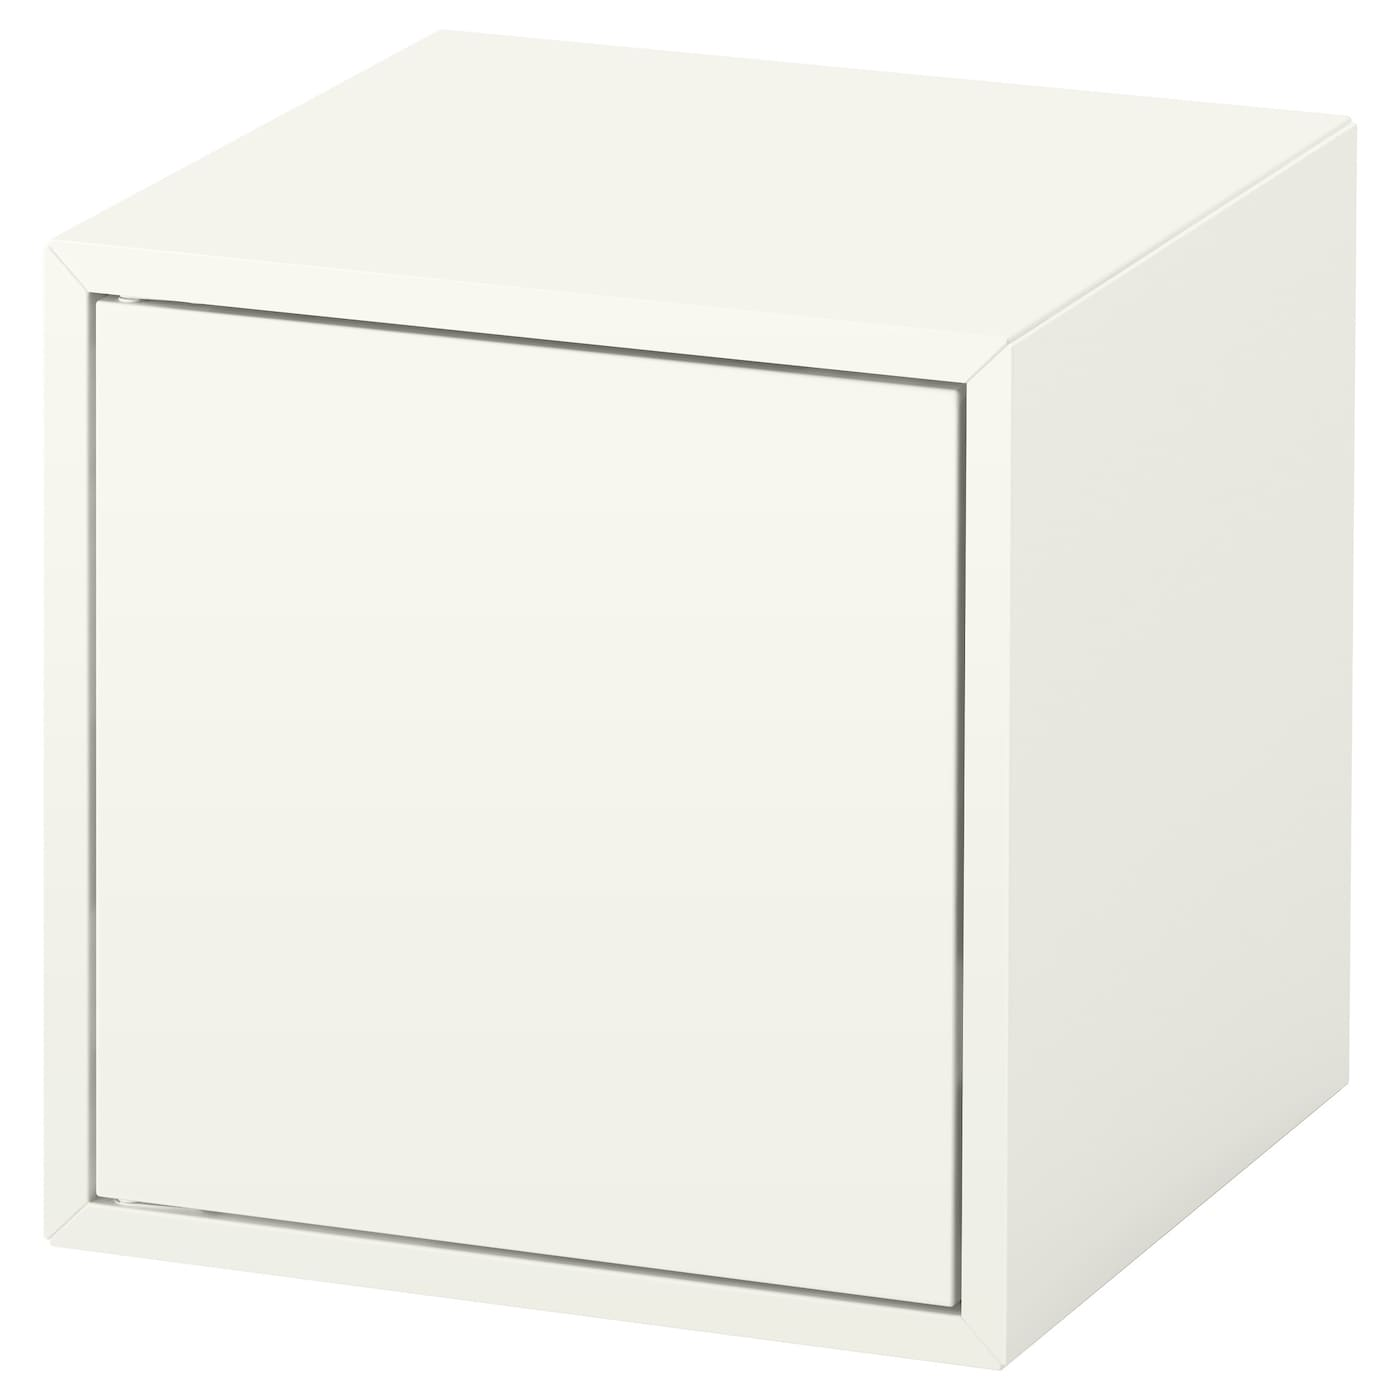 eket armoire 1 porte blanc 35x35x35 cm ikea. Black Bedroom Furniture Sets. Home Design Ideas